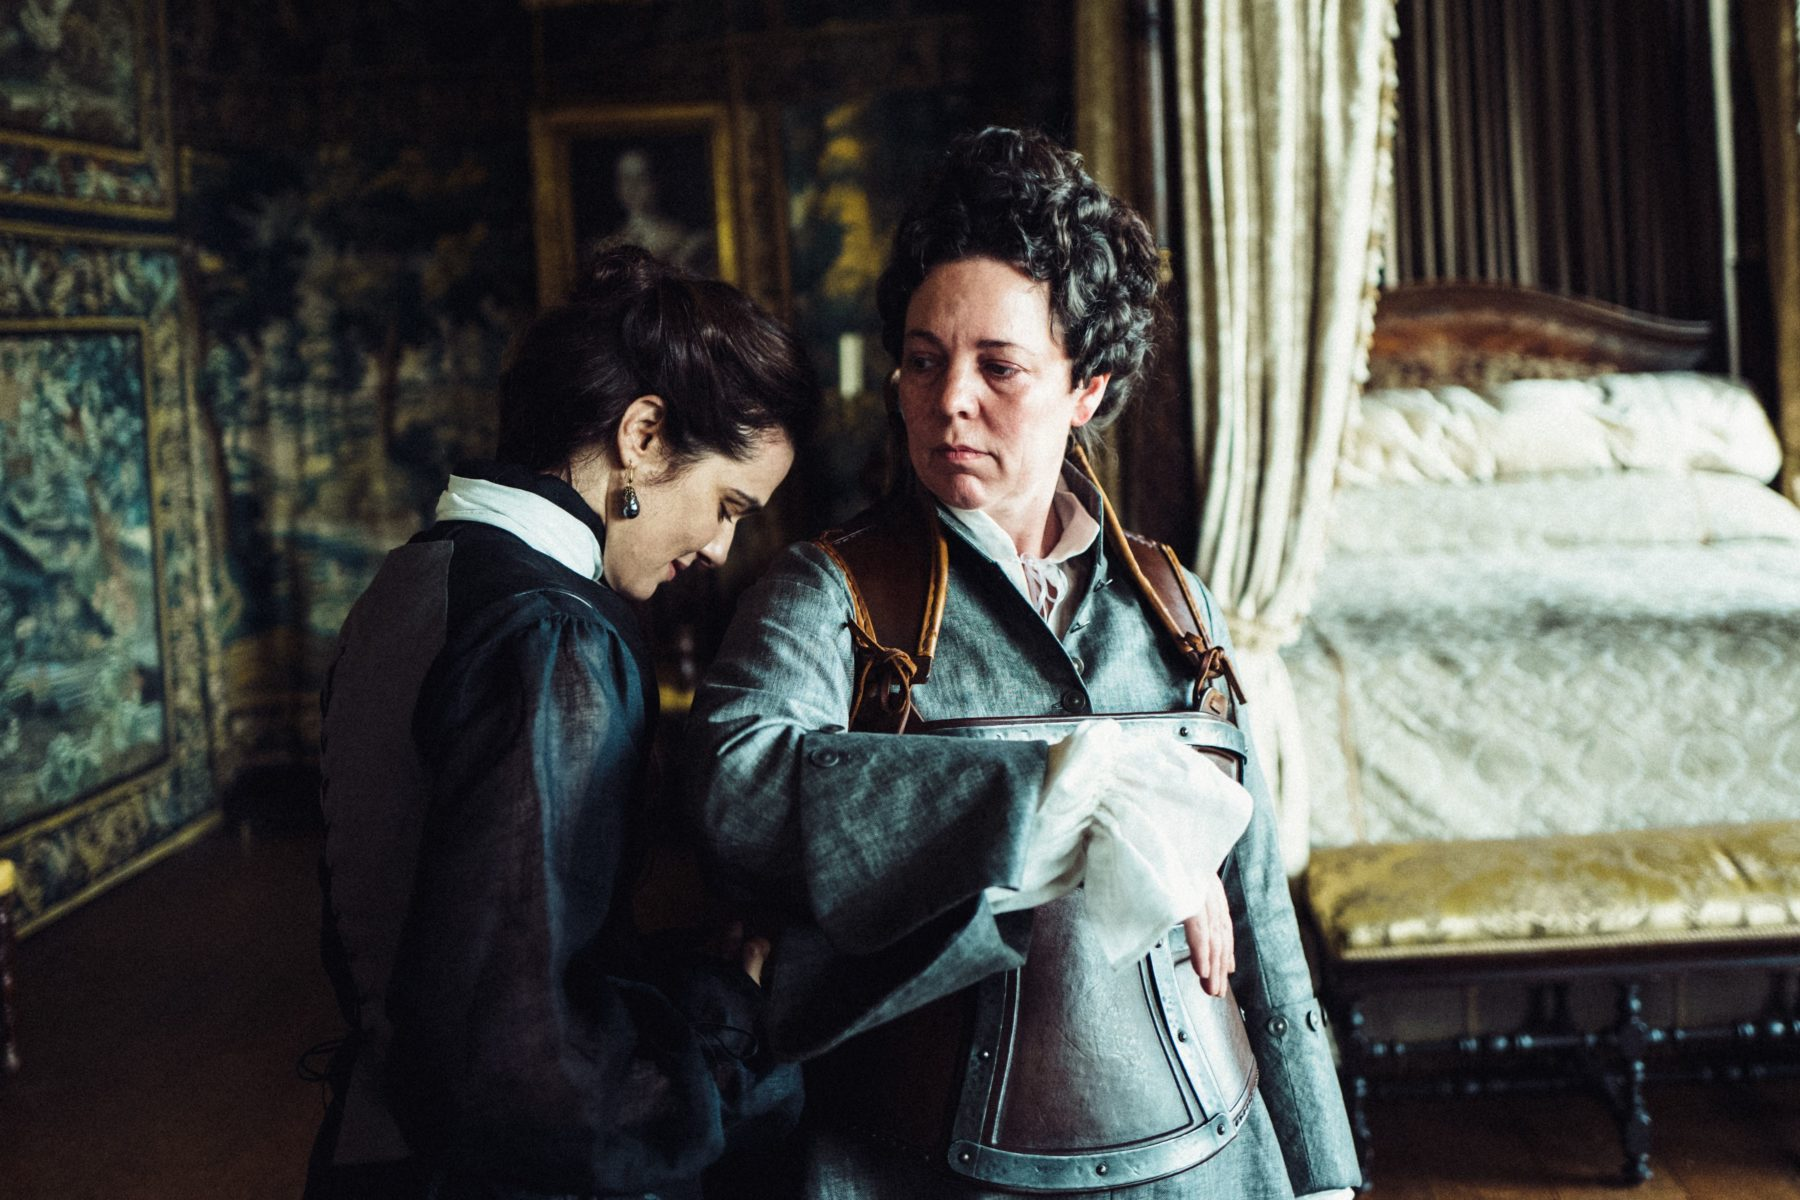 London Film Critics' Circle 2019 anuncia nominaciones lideradas por The Favourite